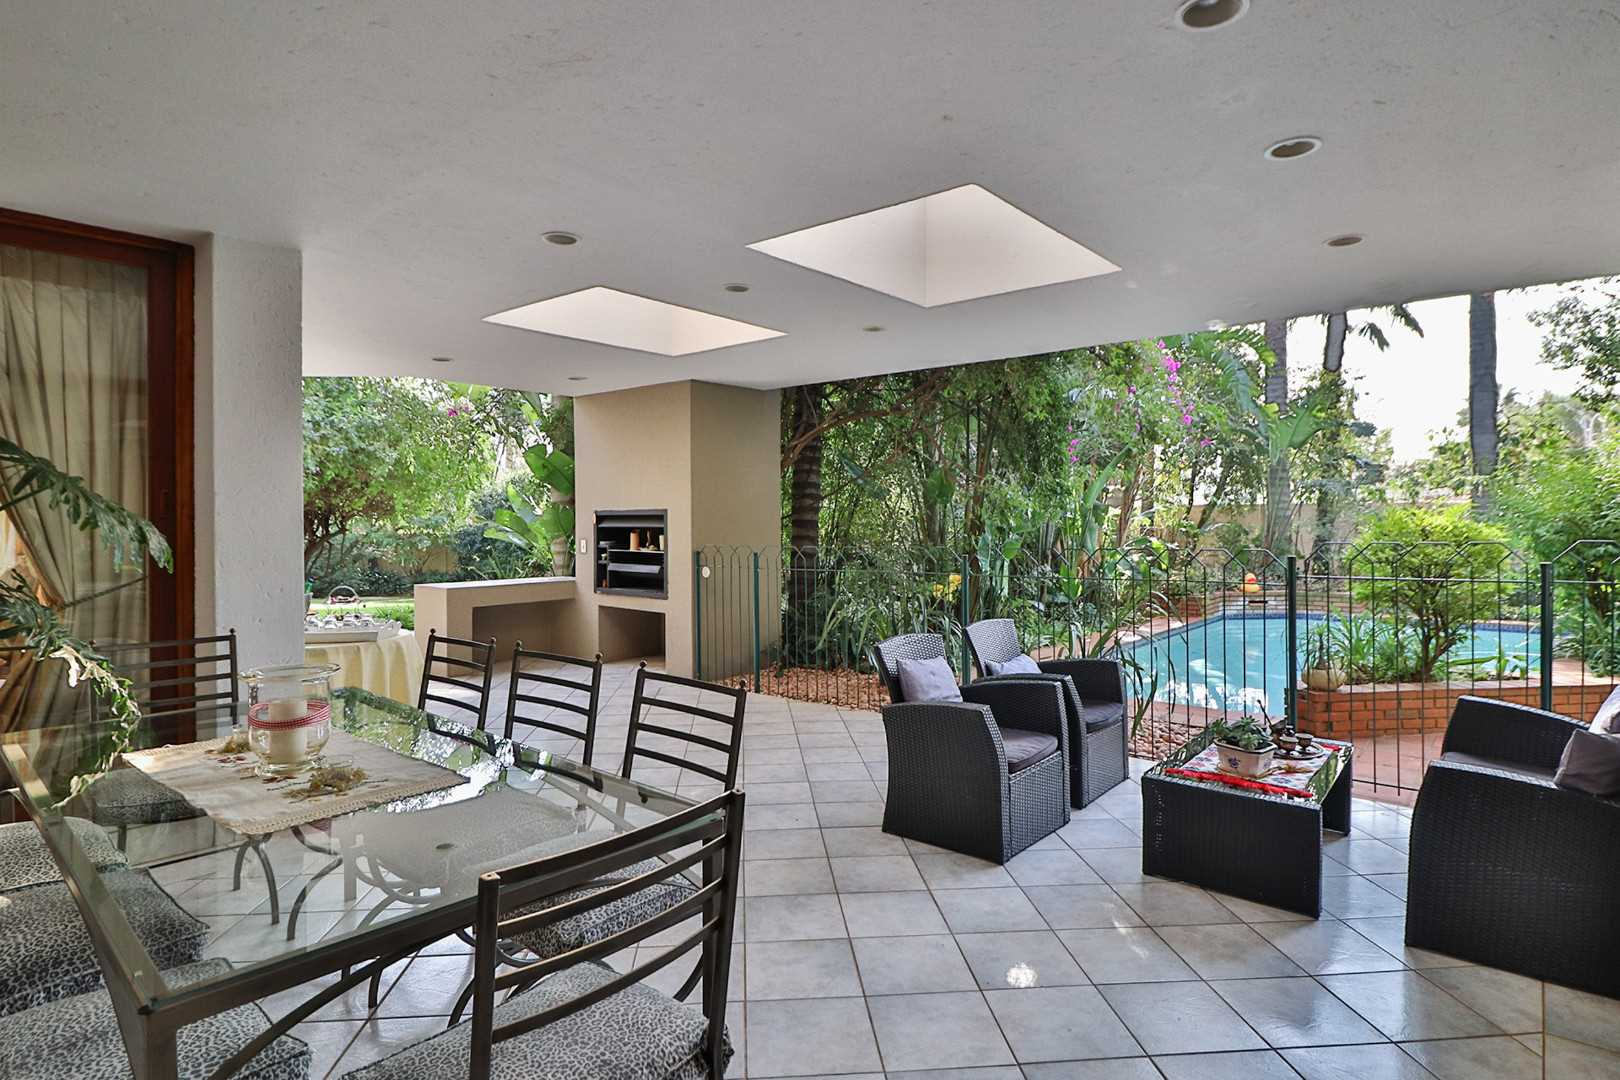 North facing patio with built in braai